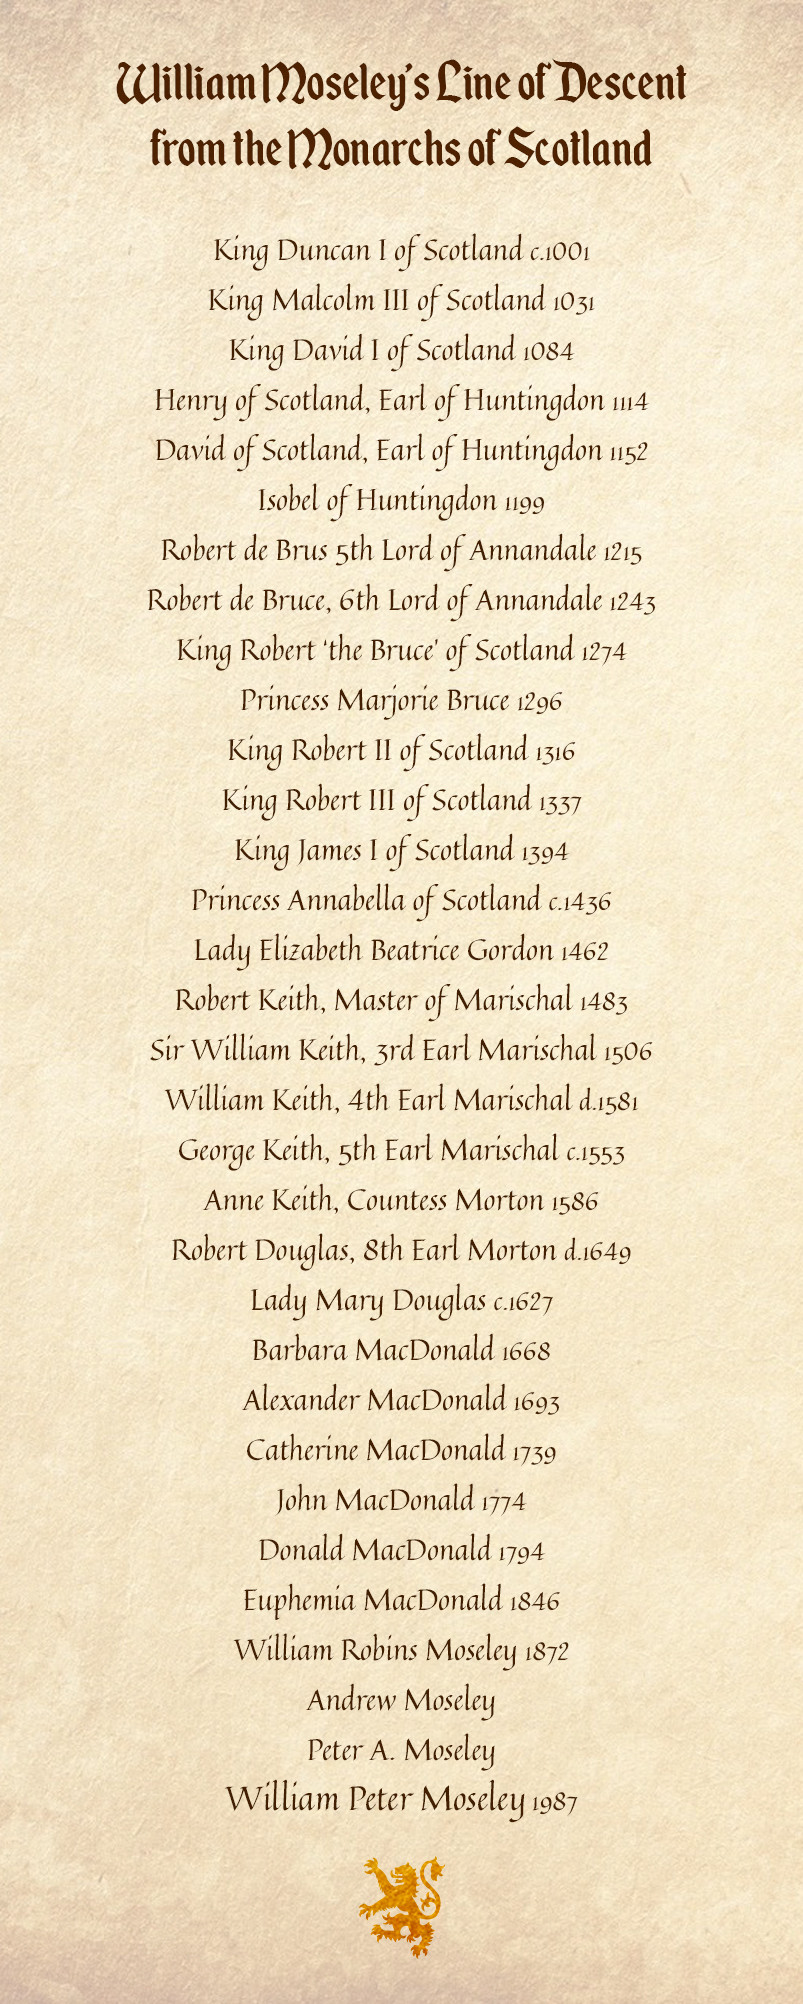 Scroll showing William Moseley's line of descent from Scottish royalty by Mike Batie.